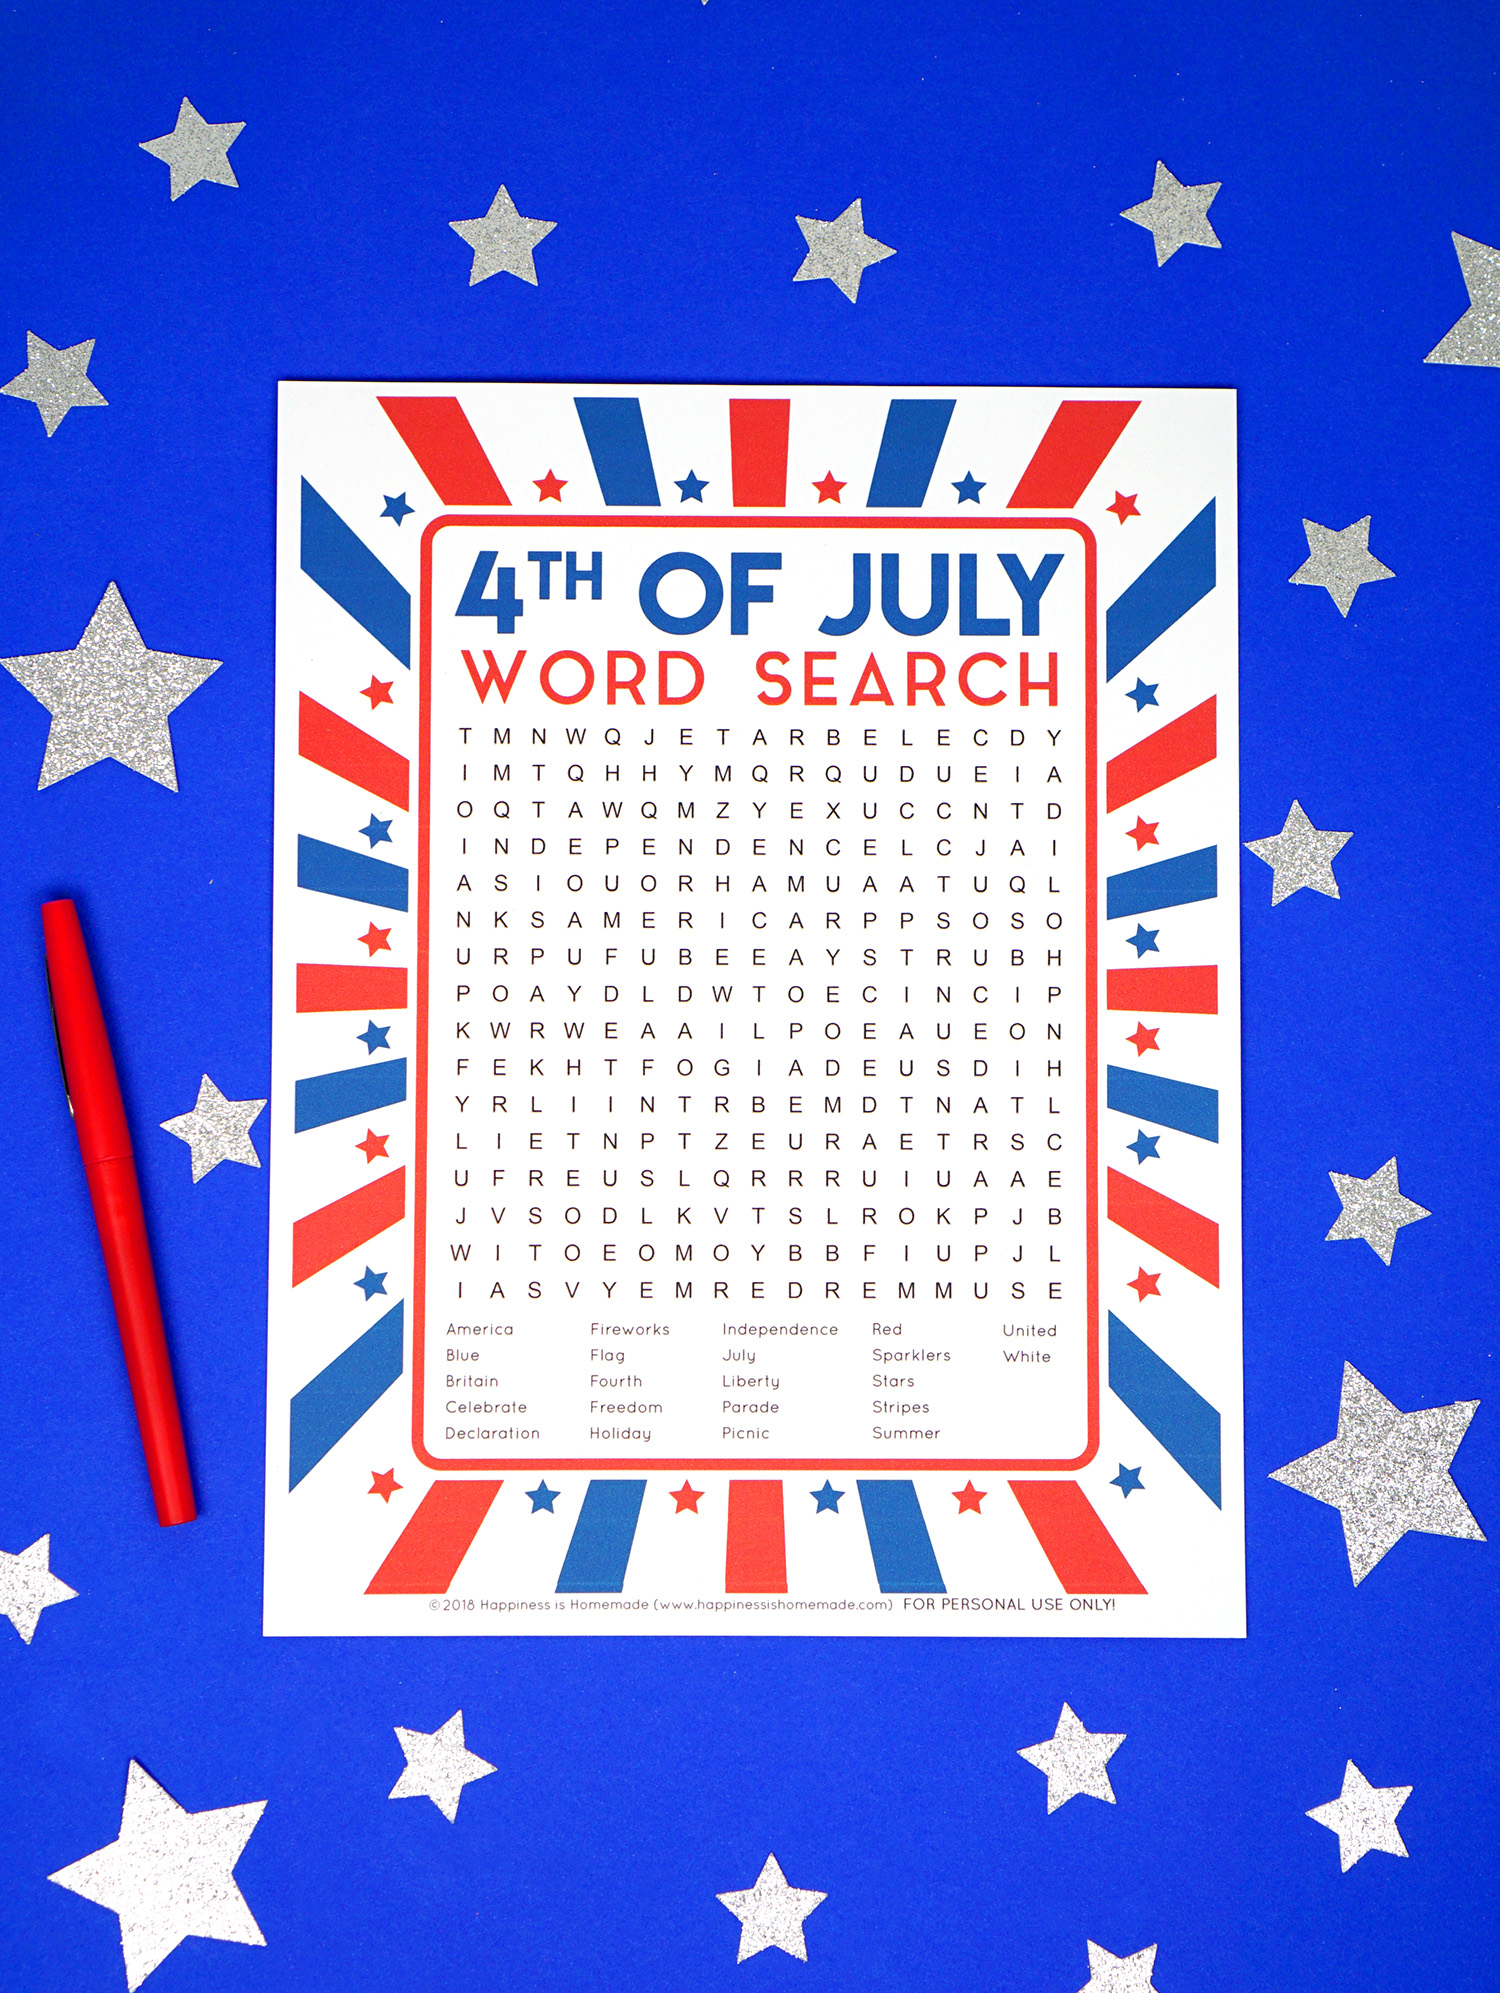 4Th Of July Word Search Printable - Happiness Is Homemade